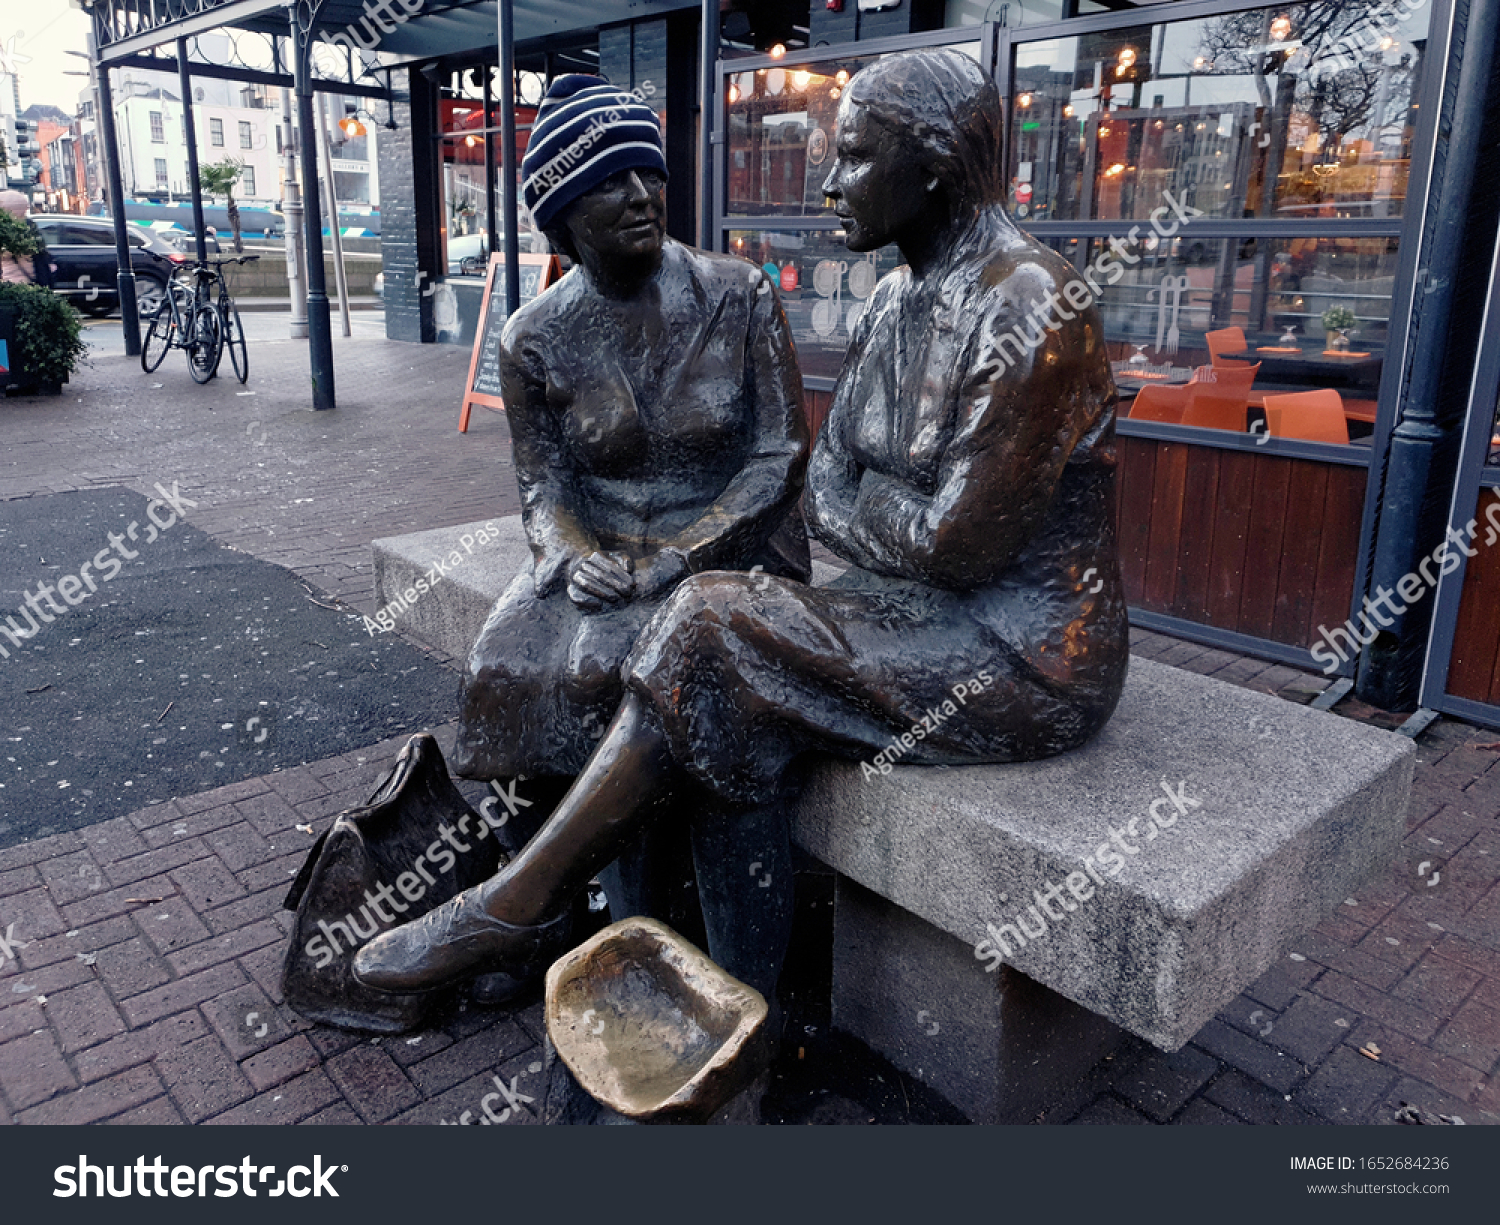 stock-photo-dublin-ireland-february-the-